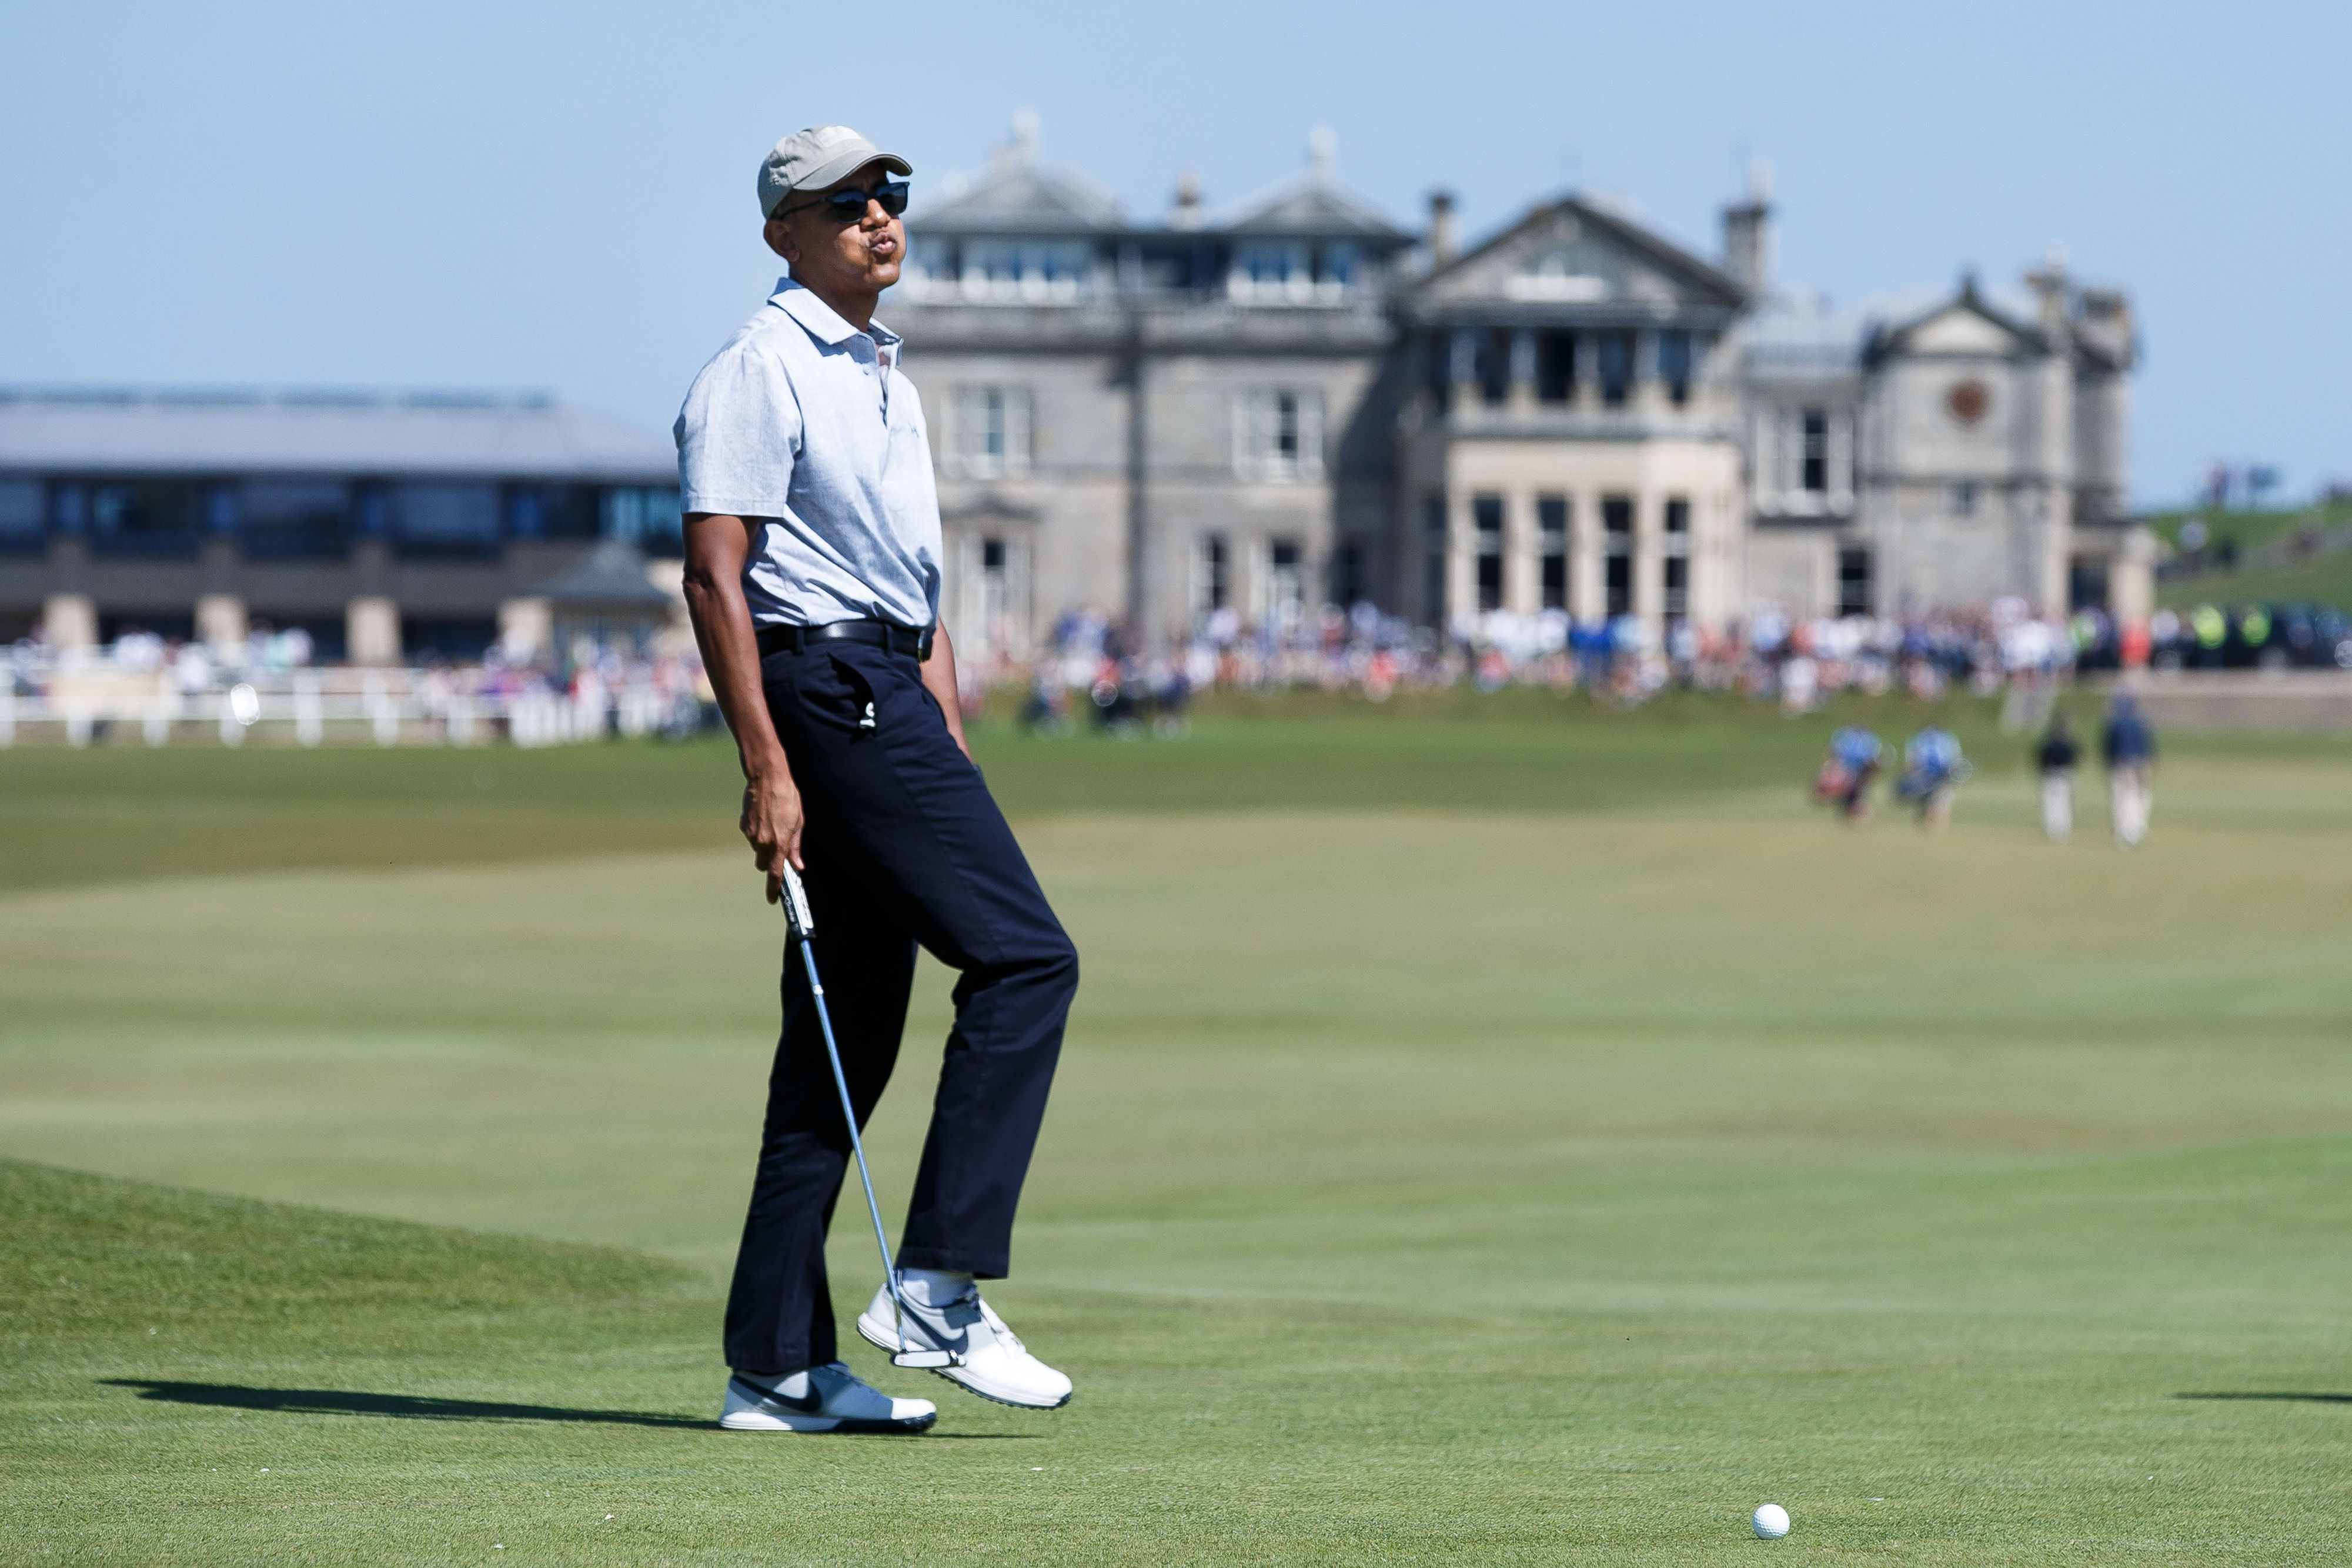 Former President Barack Obama plays golf at the Old Course on May 26, 2017, in St. Andrews, Scotland.